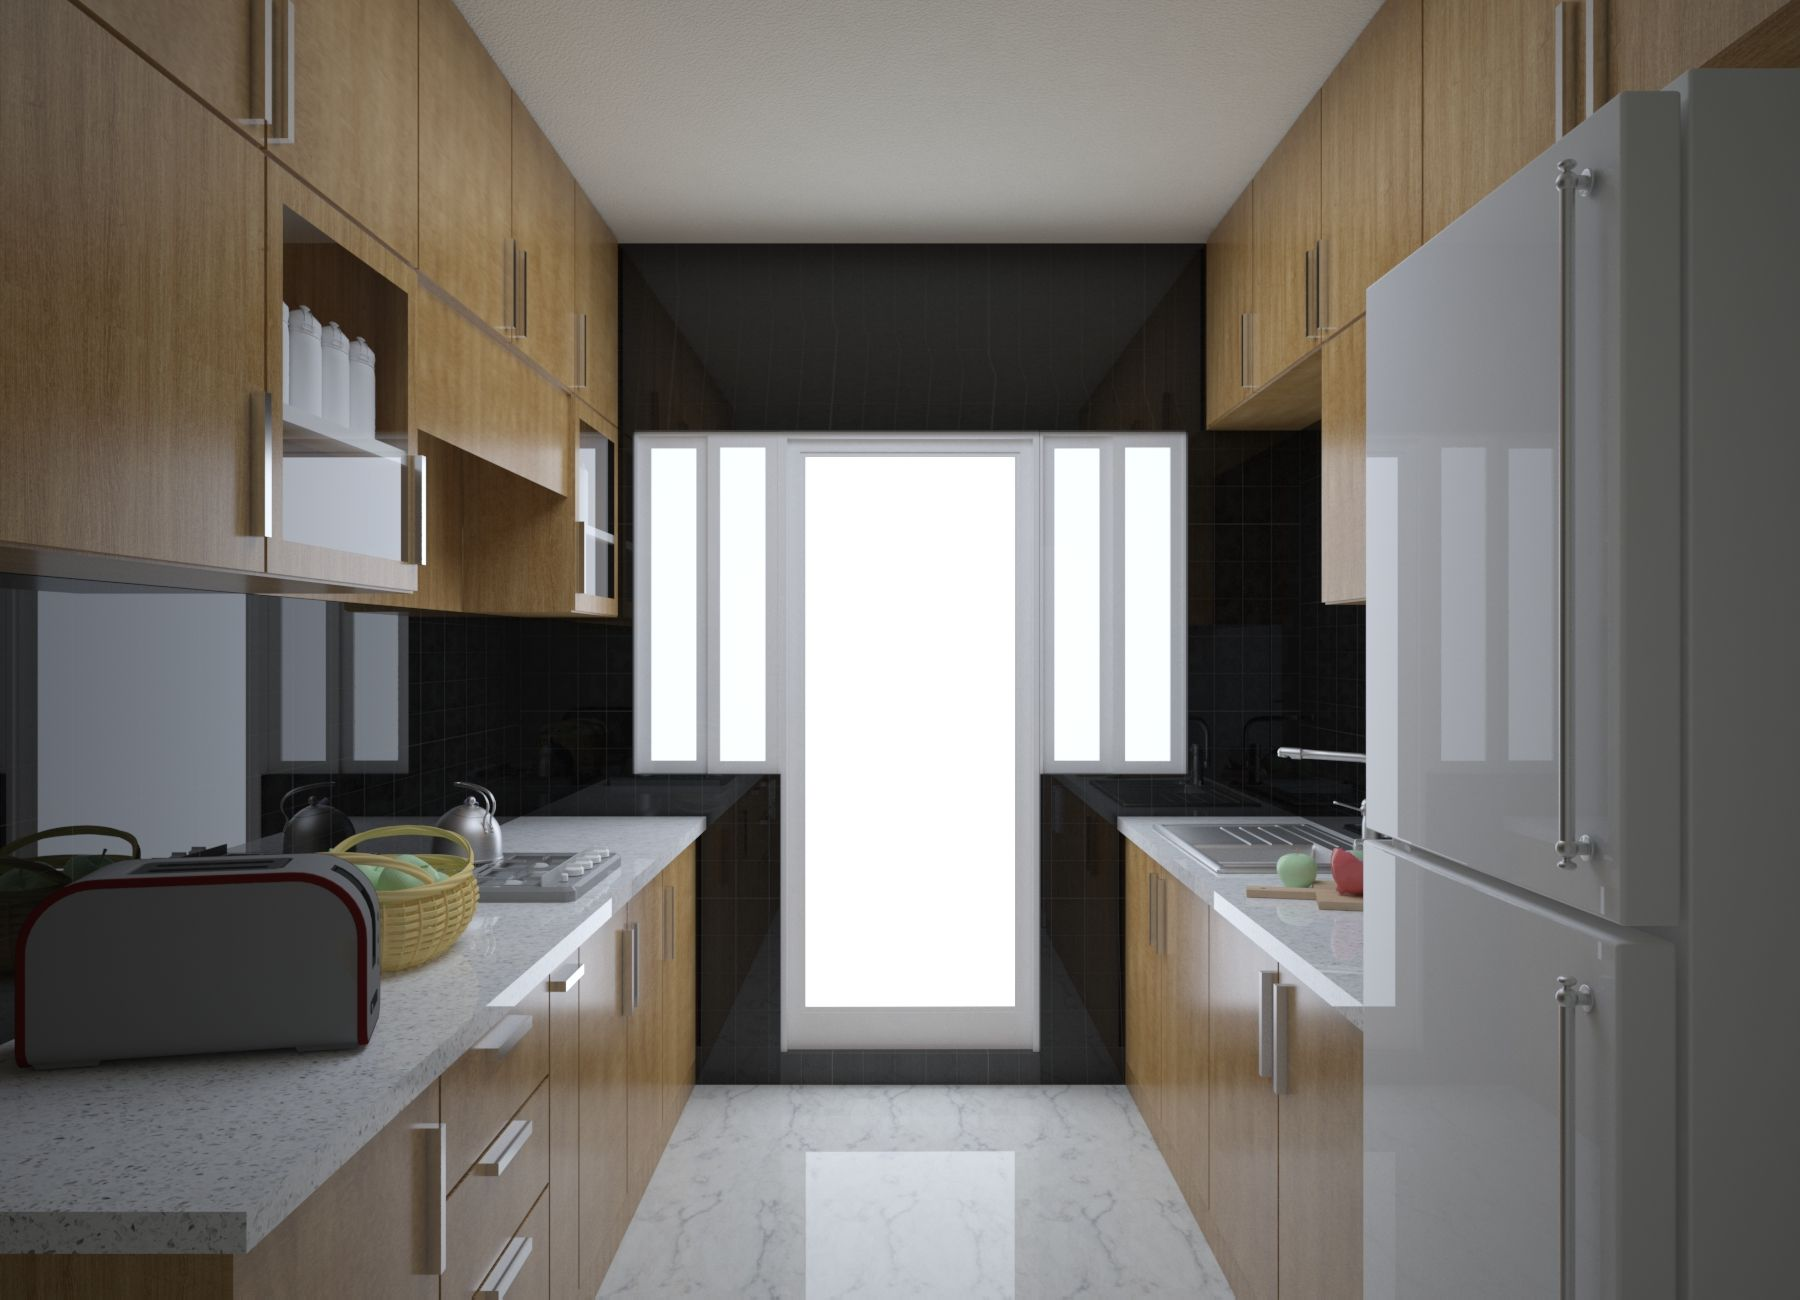 Parallel Modular Kitchen Interior Design Having Complete Wood Finish Making Most Use Of Your Space Interior Design Kitchen Kitchen Interior Interior